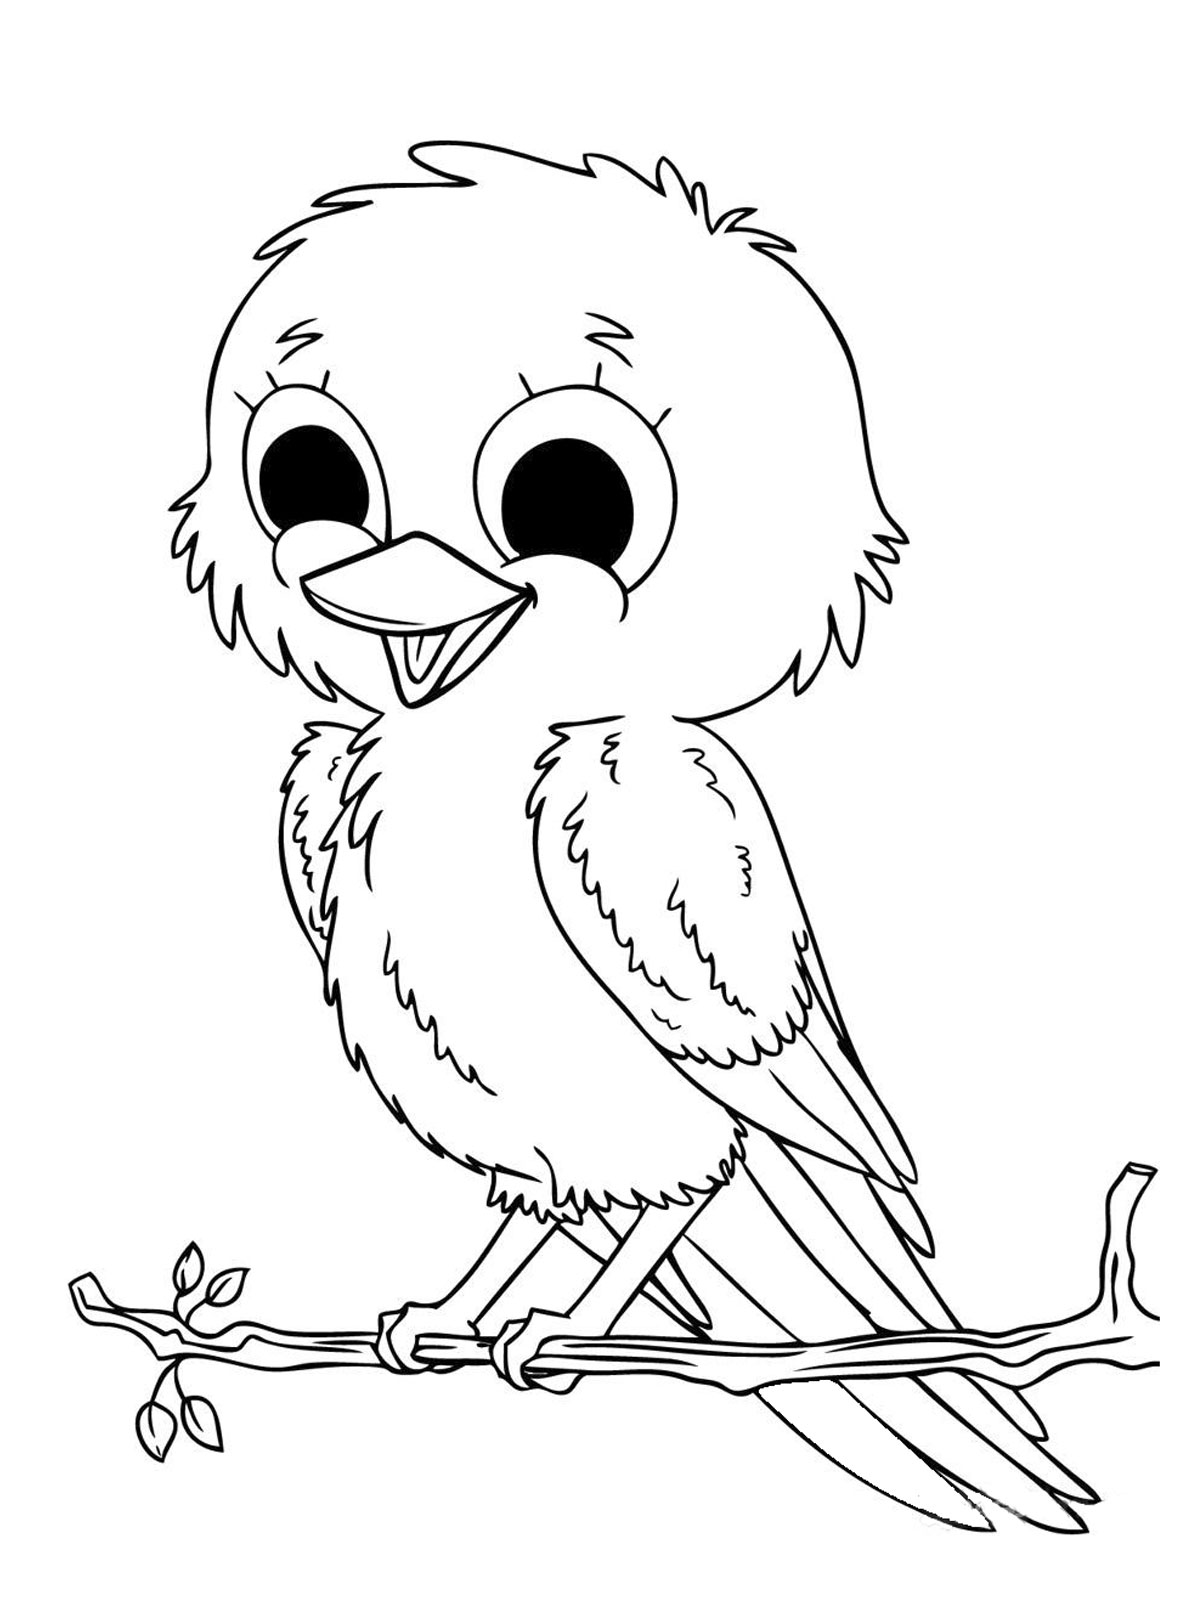 Baby animal coloring pages realistic coloring pages for Animal coloring pages printable free